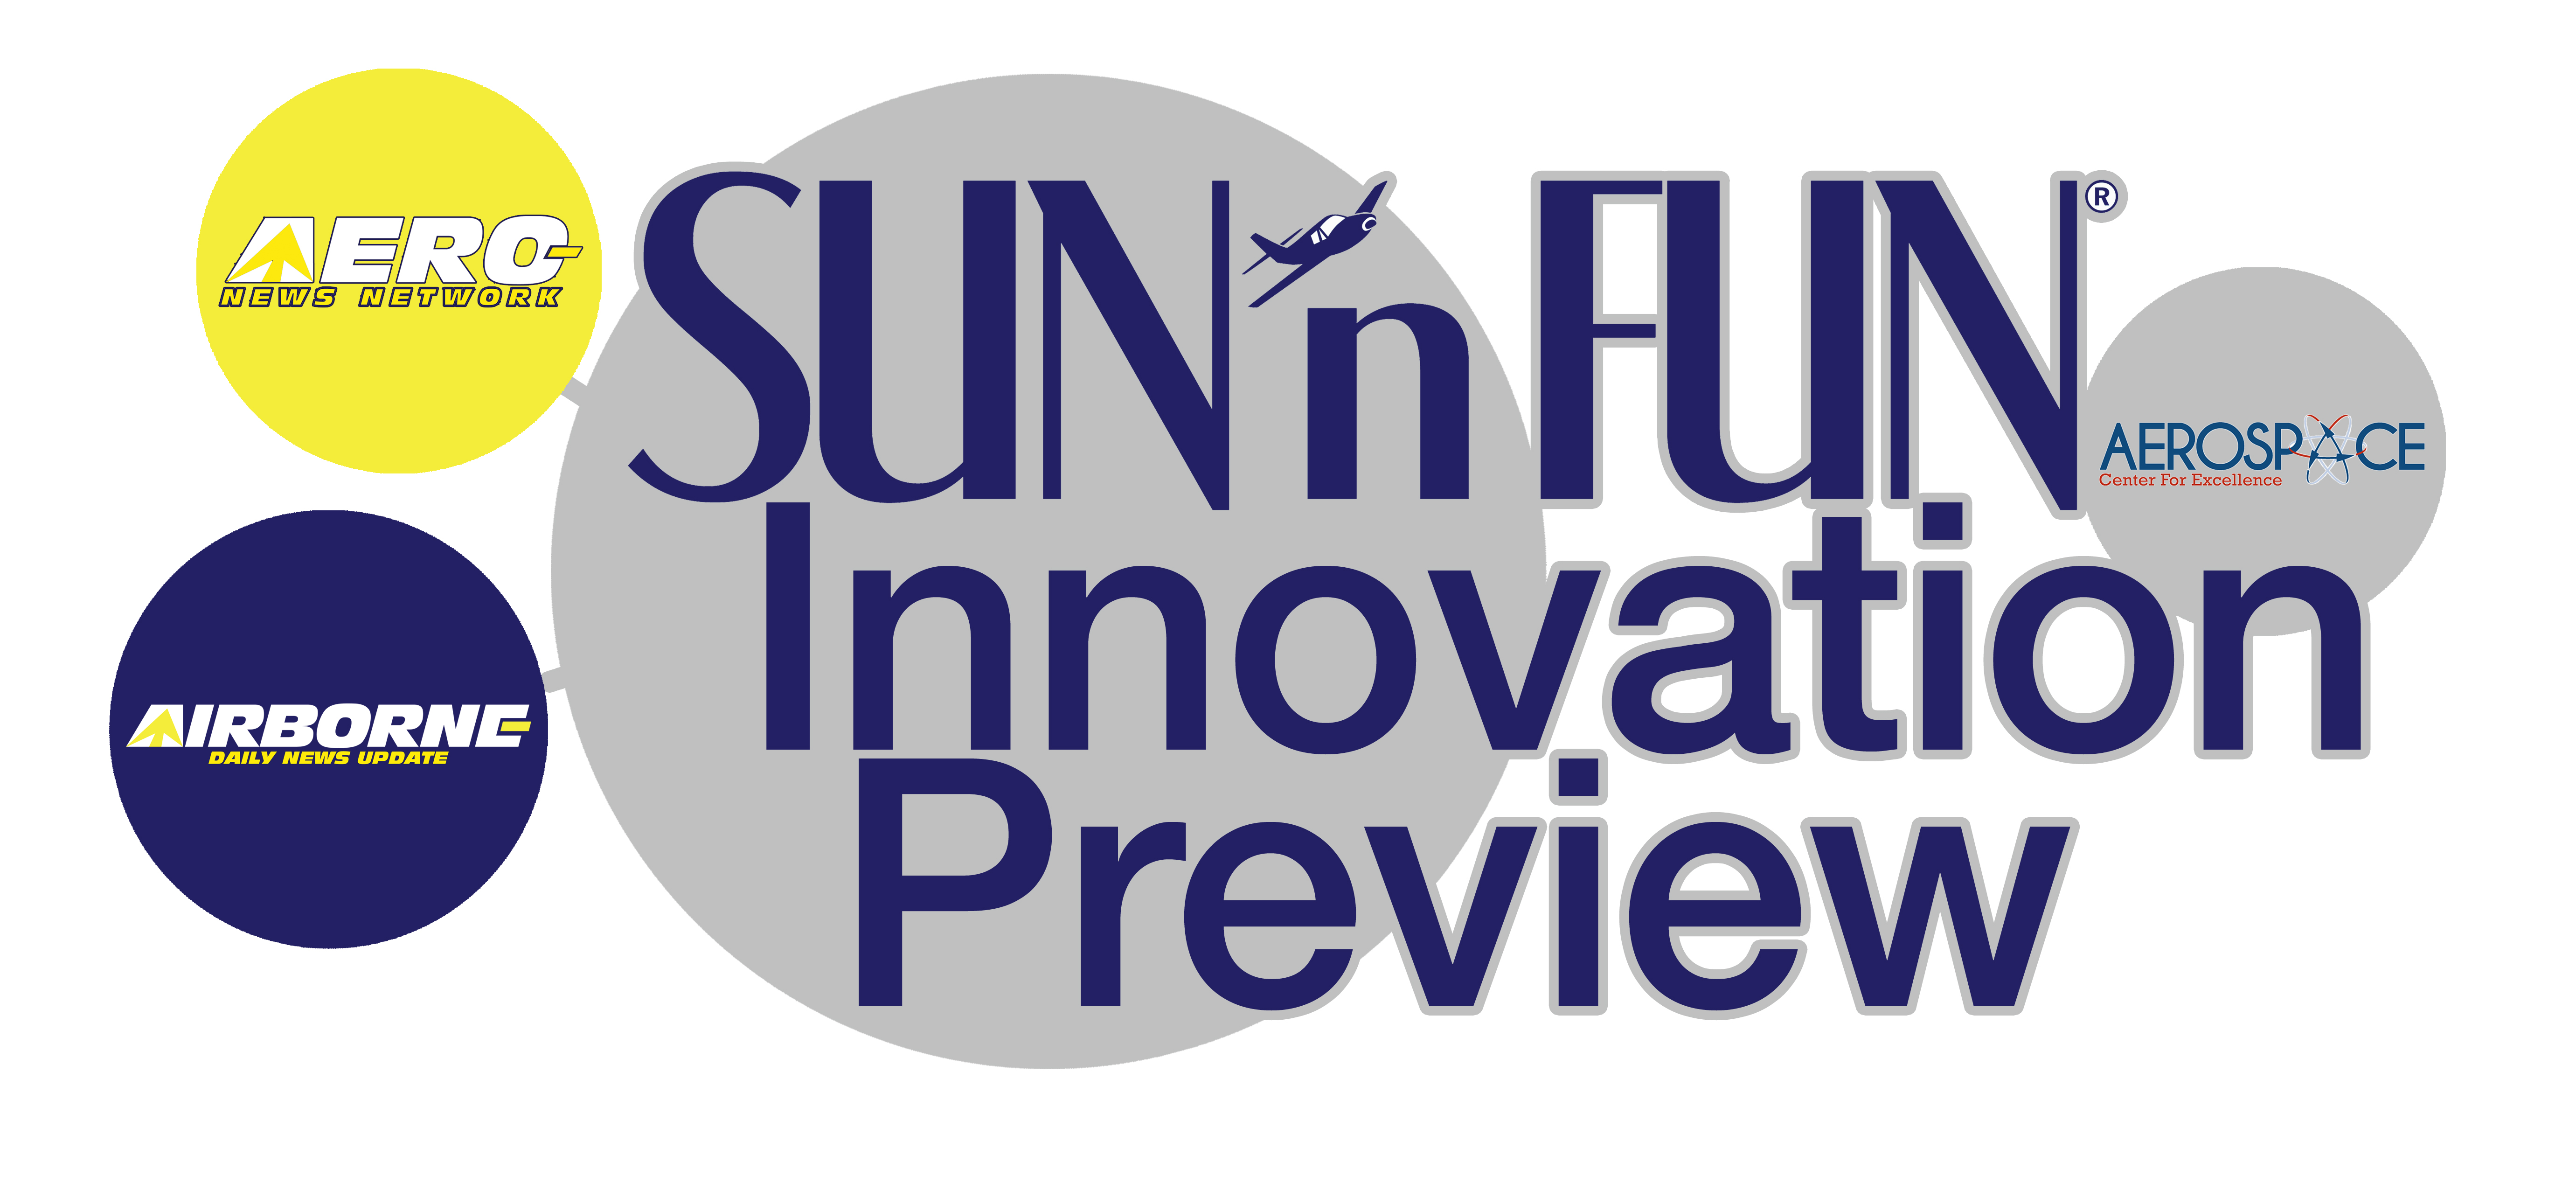 SNF16 Innovation Preview